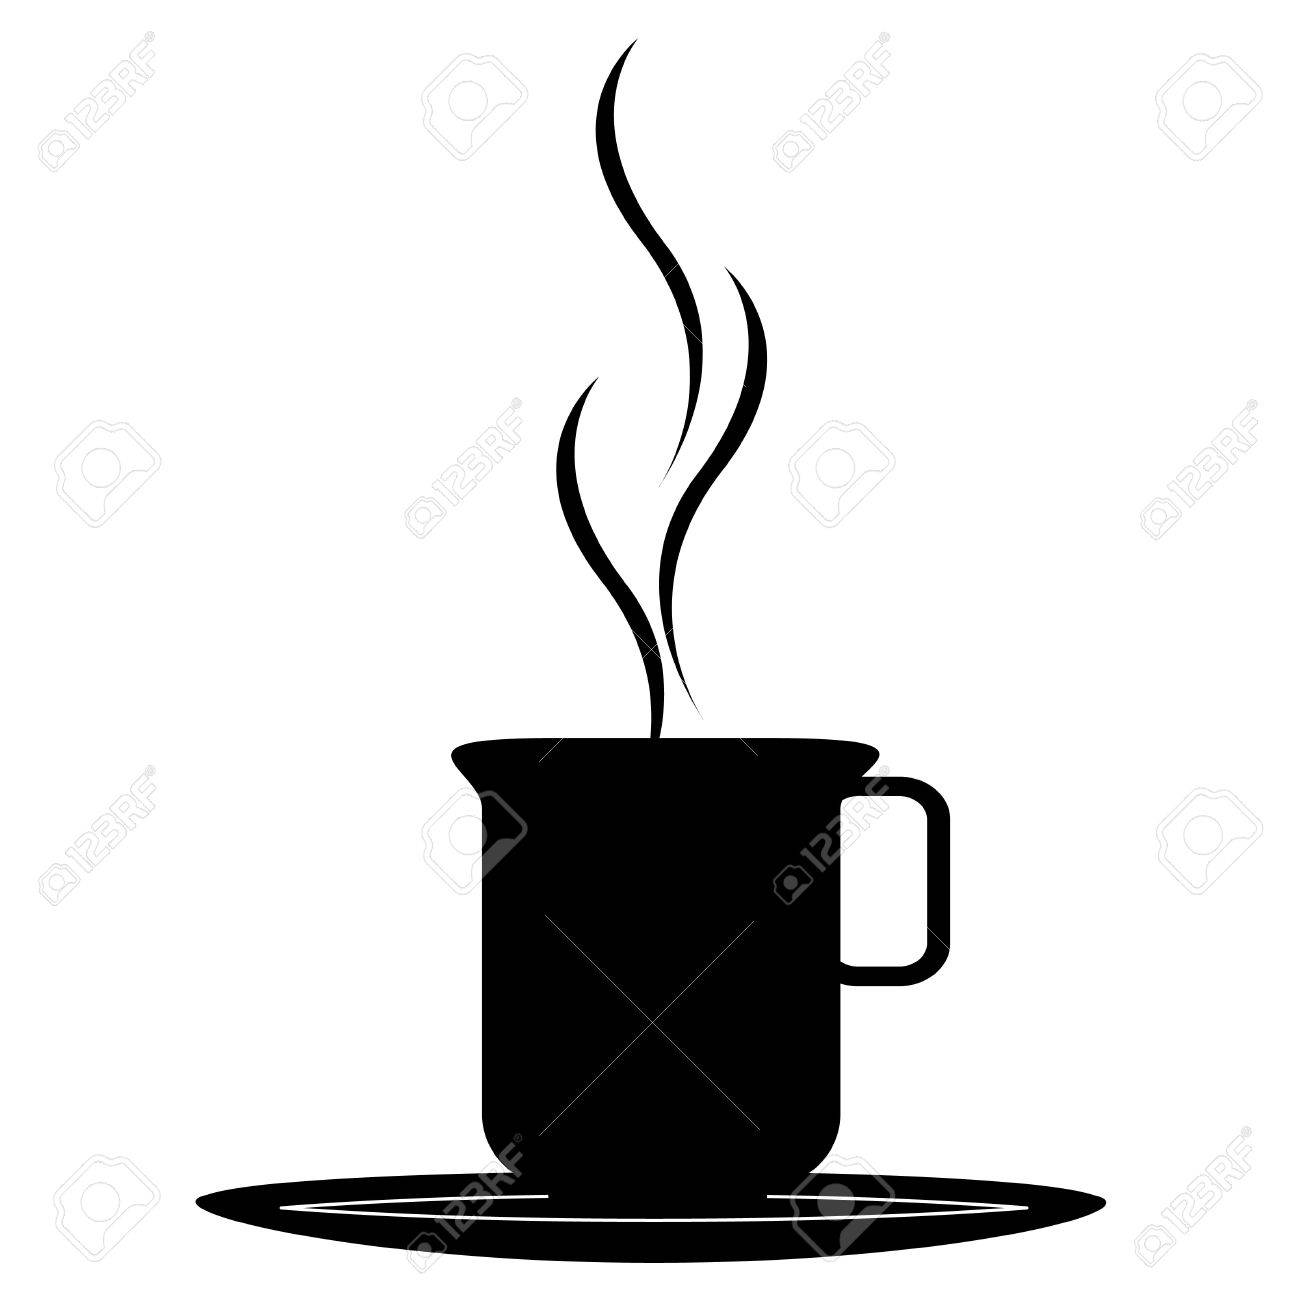 Coffee Cup Silhouette Stock Vector - 6382157